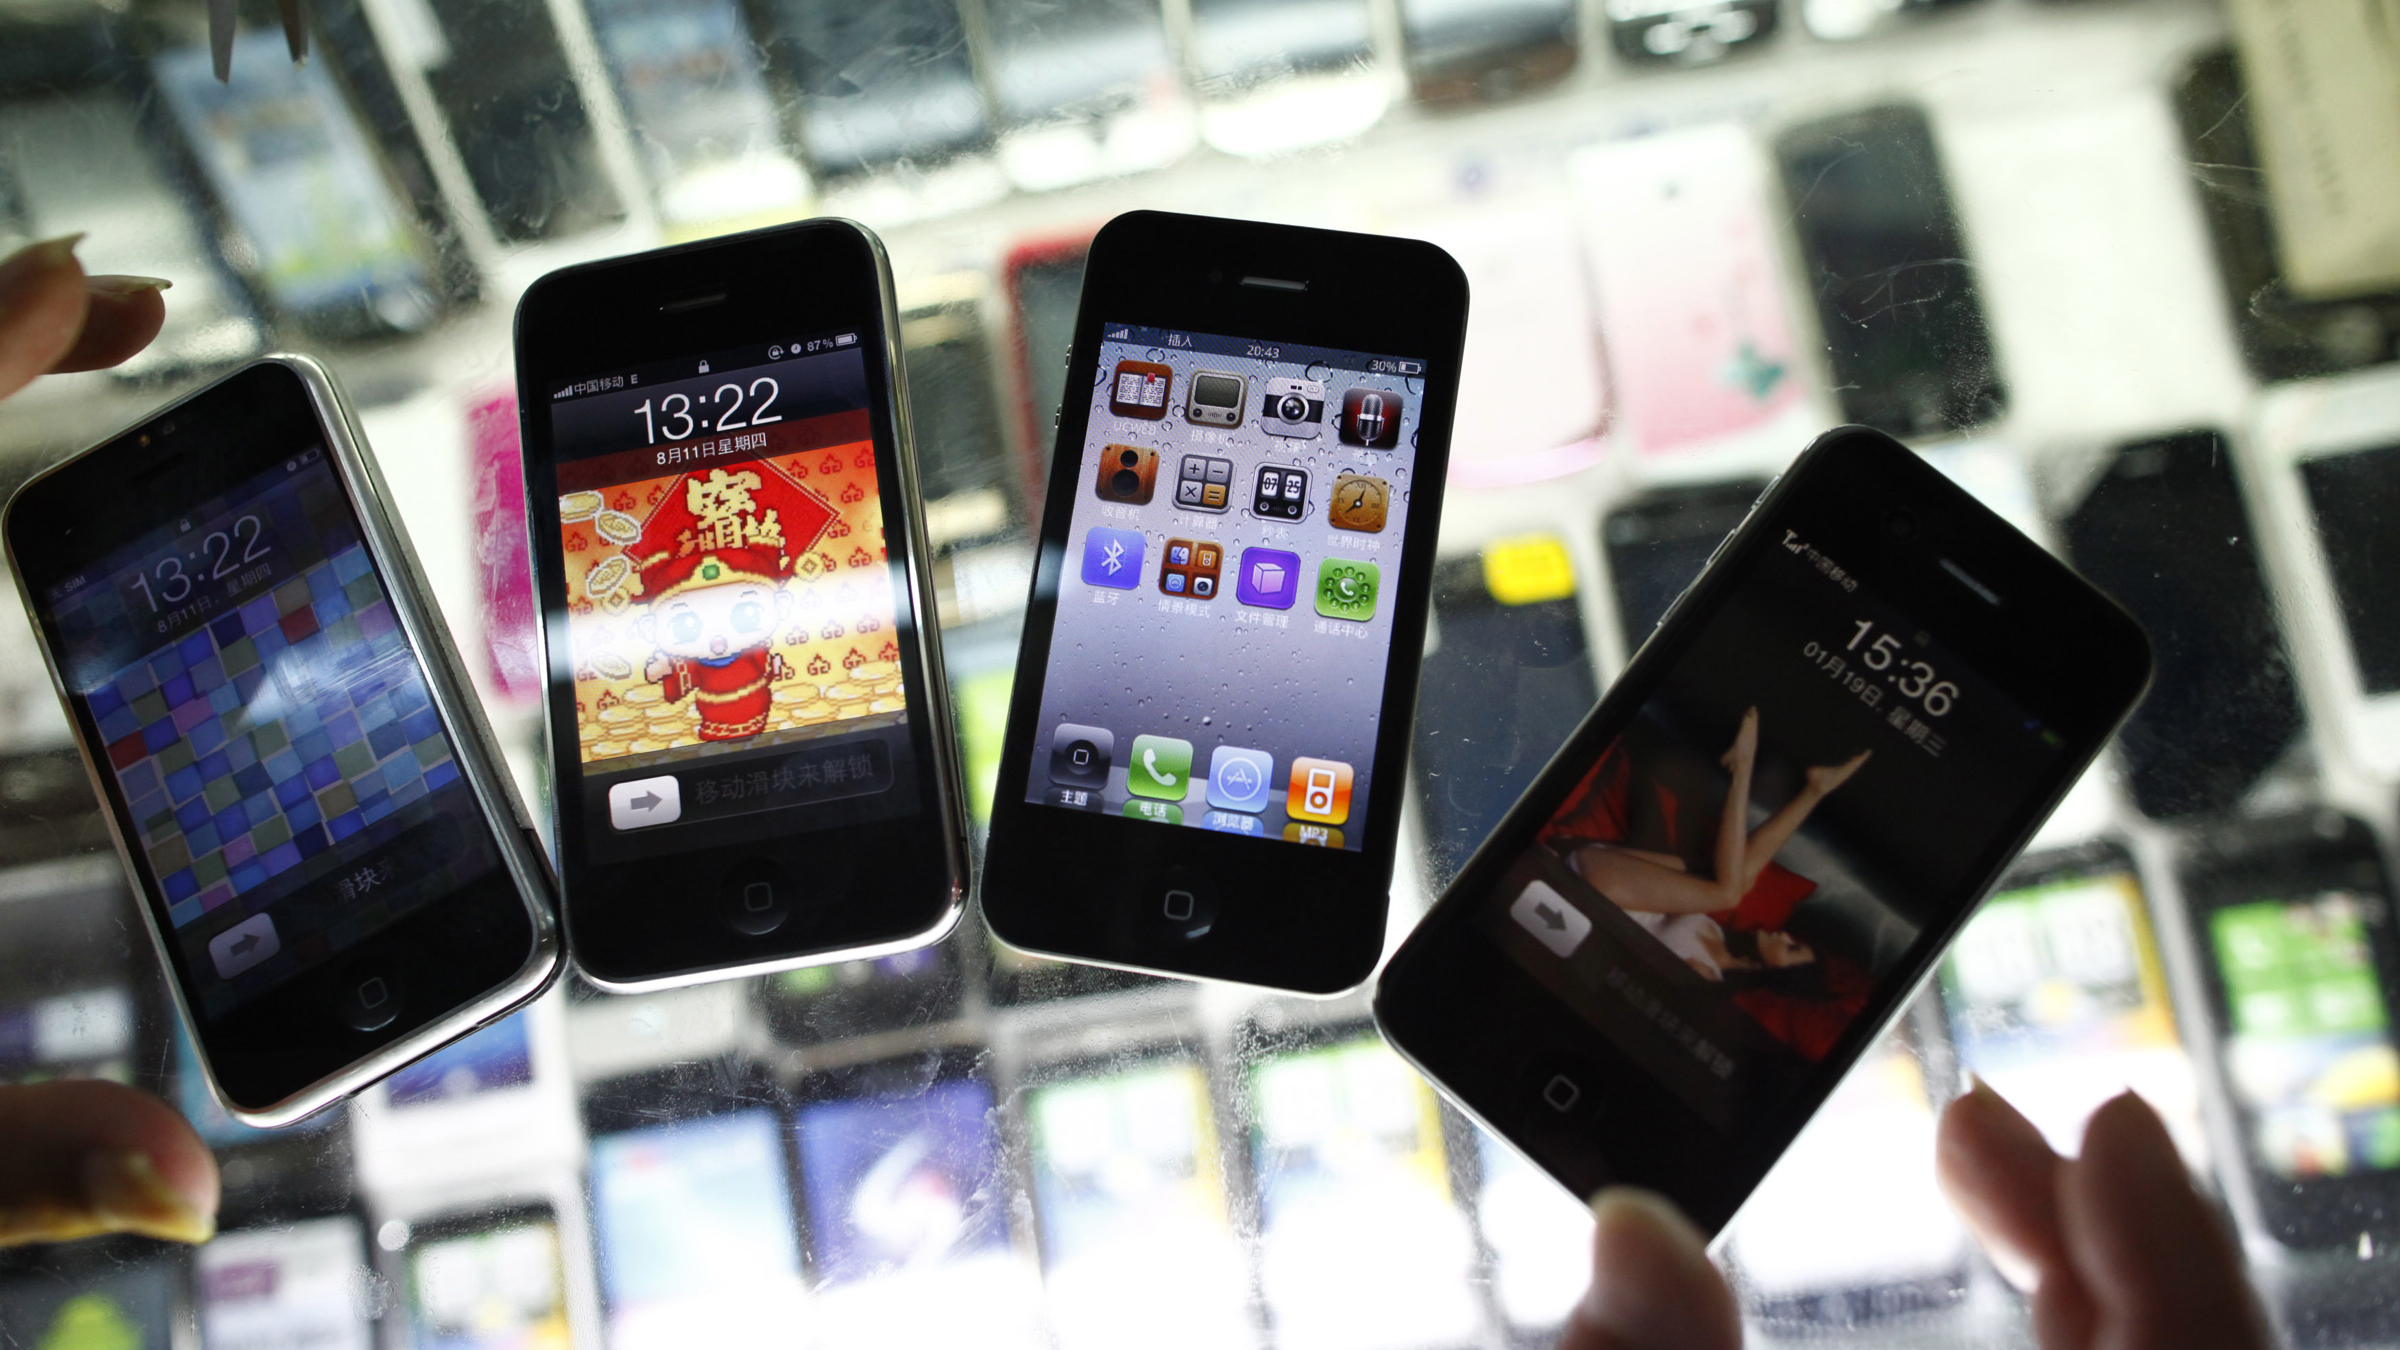 Fake iPhones are displayed at a mobile phone stall in Shanghai August 11, 2011. The newest version of Apple Inc's popular iPhone has already hit the Chinese market -- the fake market that is.The 'hiPhone 5' is selling for as little as 200 yuan ($31) on China's top e-commerce platform Taobao, which is owned by Alibaba Group. REUTERS/Aly Song  (CHINA - Tags: ODDLY SOCIETY SCI TECH BUSINESS) - RTR2PTO2